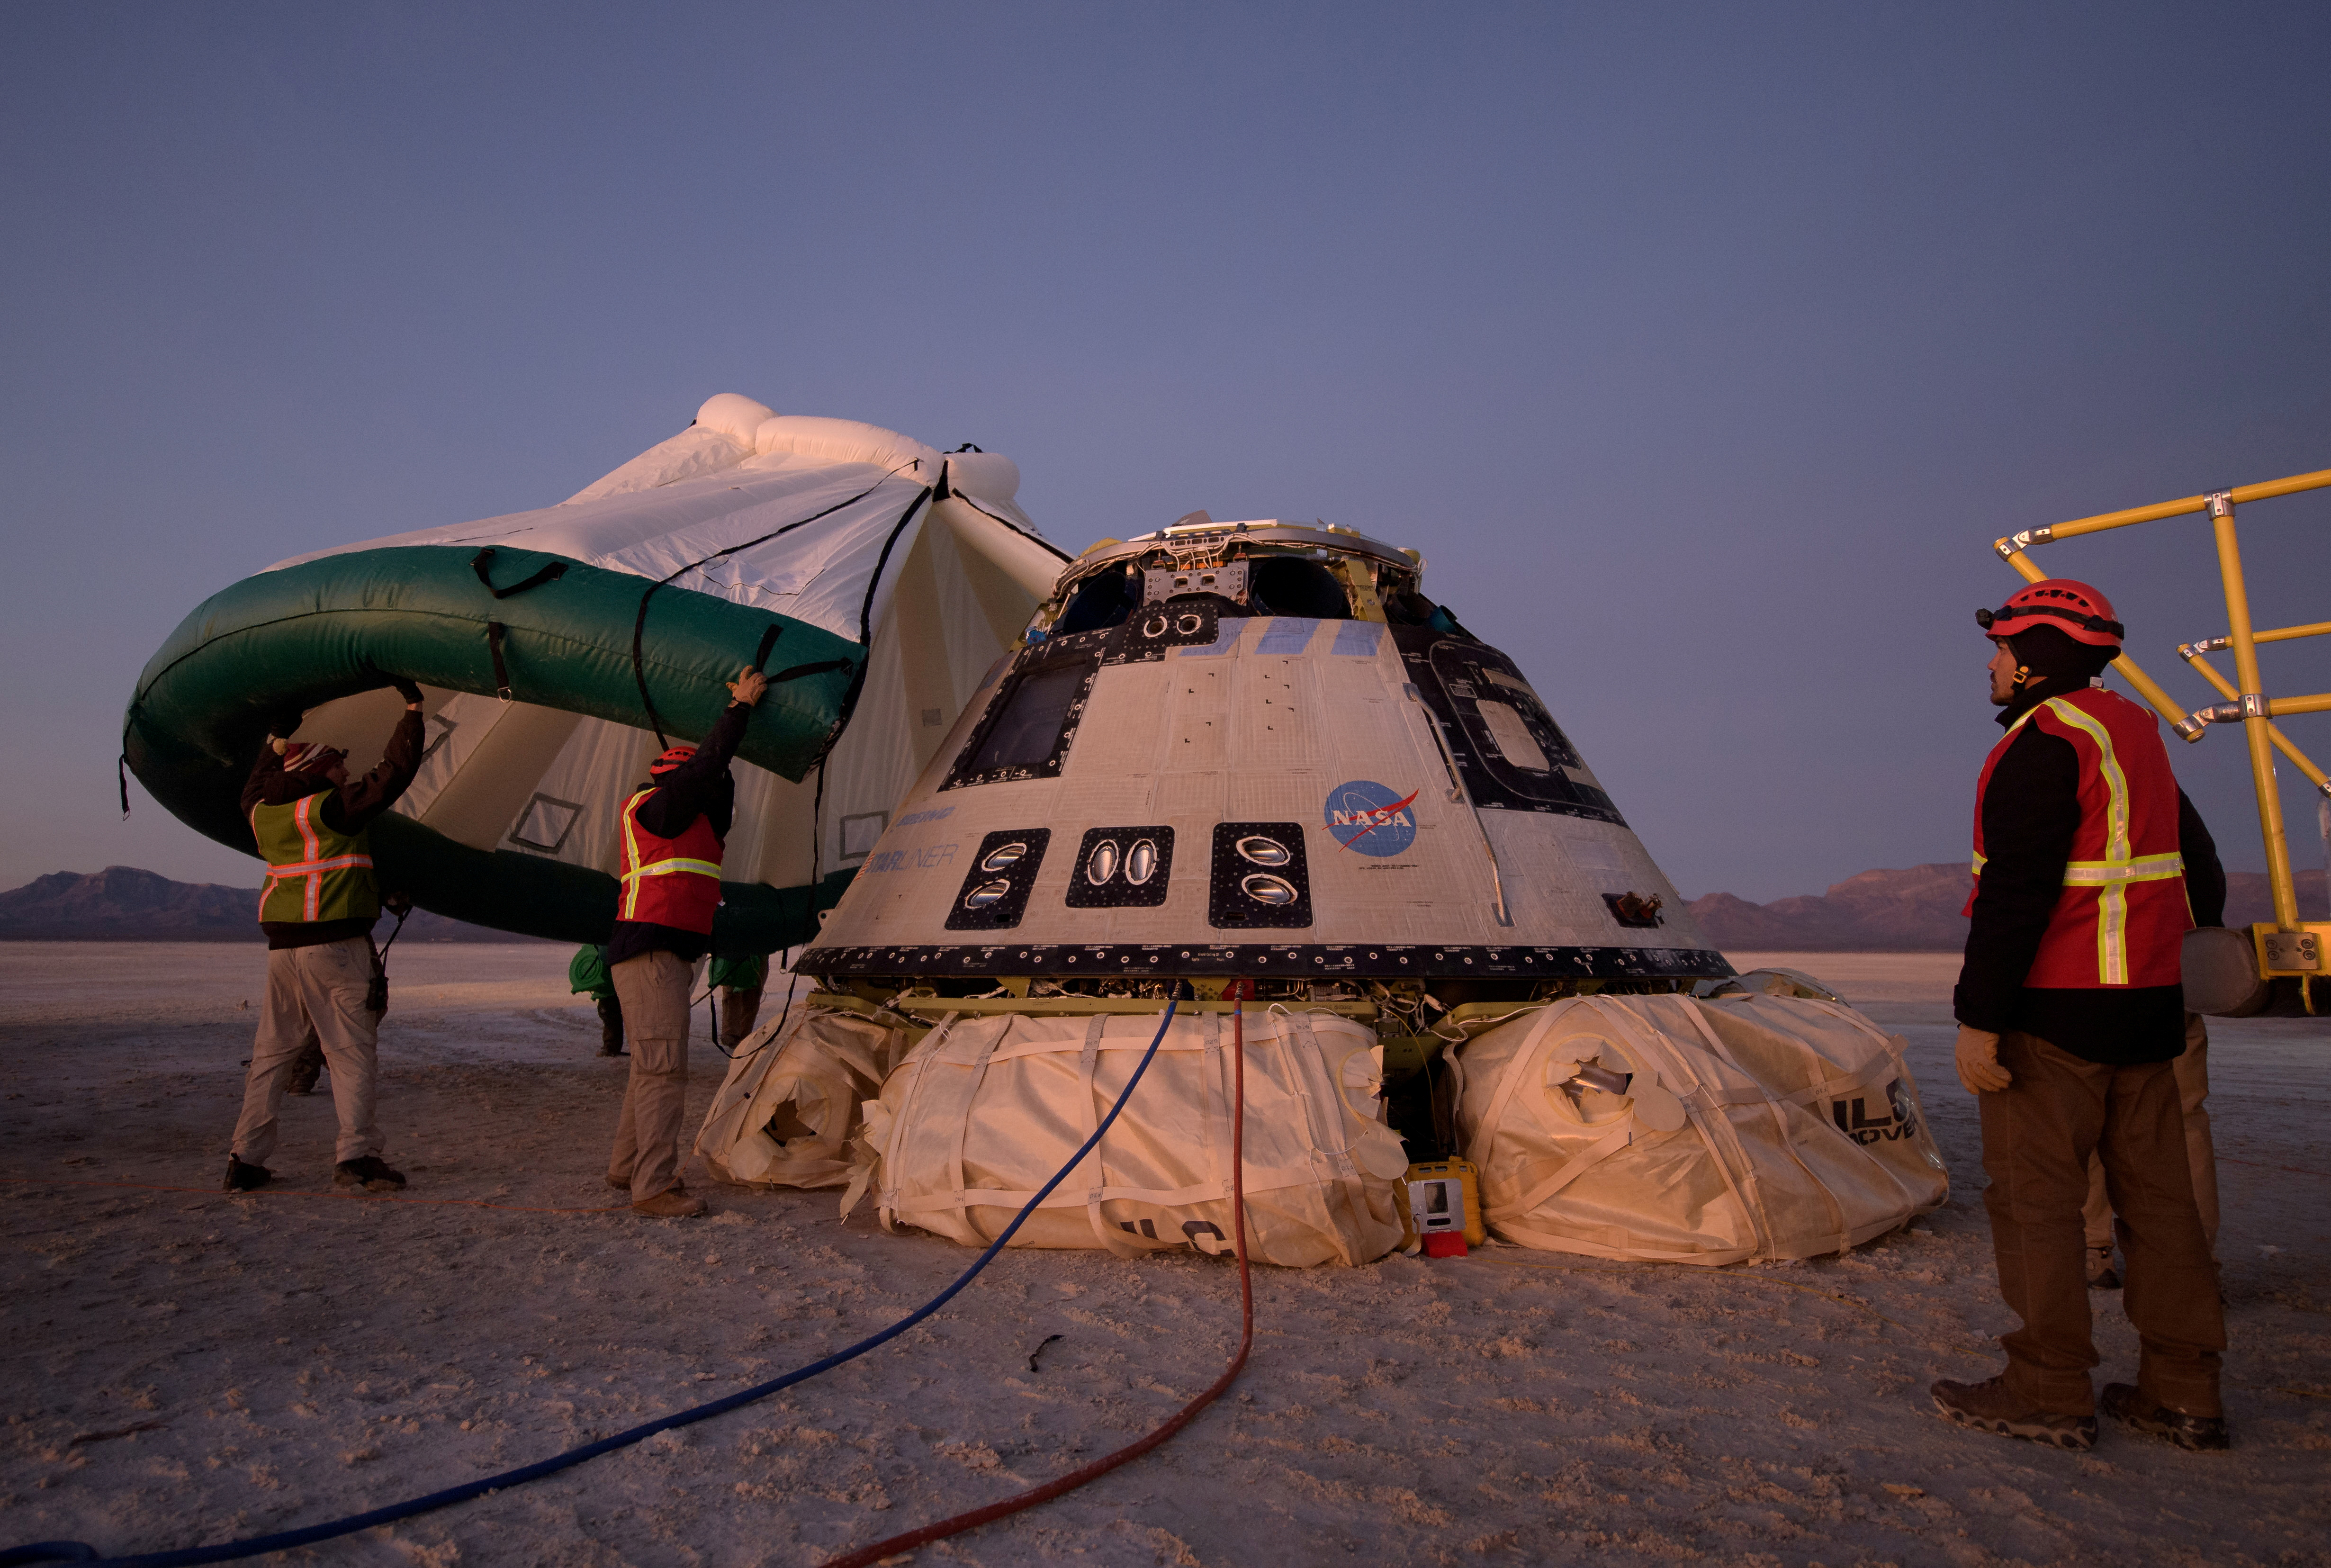 A protective tent is placed over the Boeing CST-100 Starliner spacecraft, which had been launched on a United Launch Alliance Atlas V rocket, after its descent by parachute following an abbreviated Orbital Flight Test for NASA's Commercial Crew programs in White Sands, New Mexico, U.S. December 22, 2019. NASA/Bill Ingalls via REUTERS.  THIS IMAGE HAS BEEN SUPPLIED BY A THIRD PARTY. MANDATORY CREDIT/File Photo